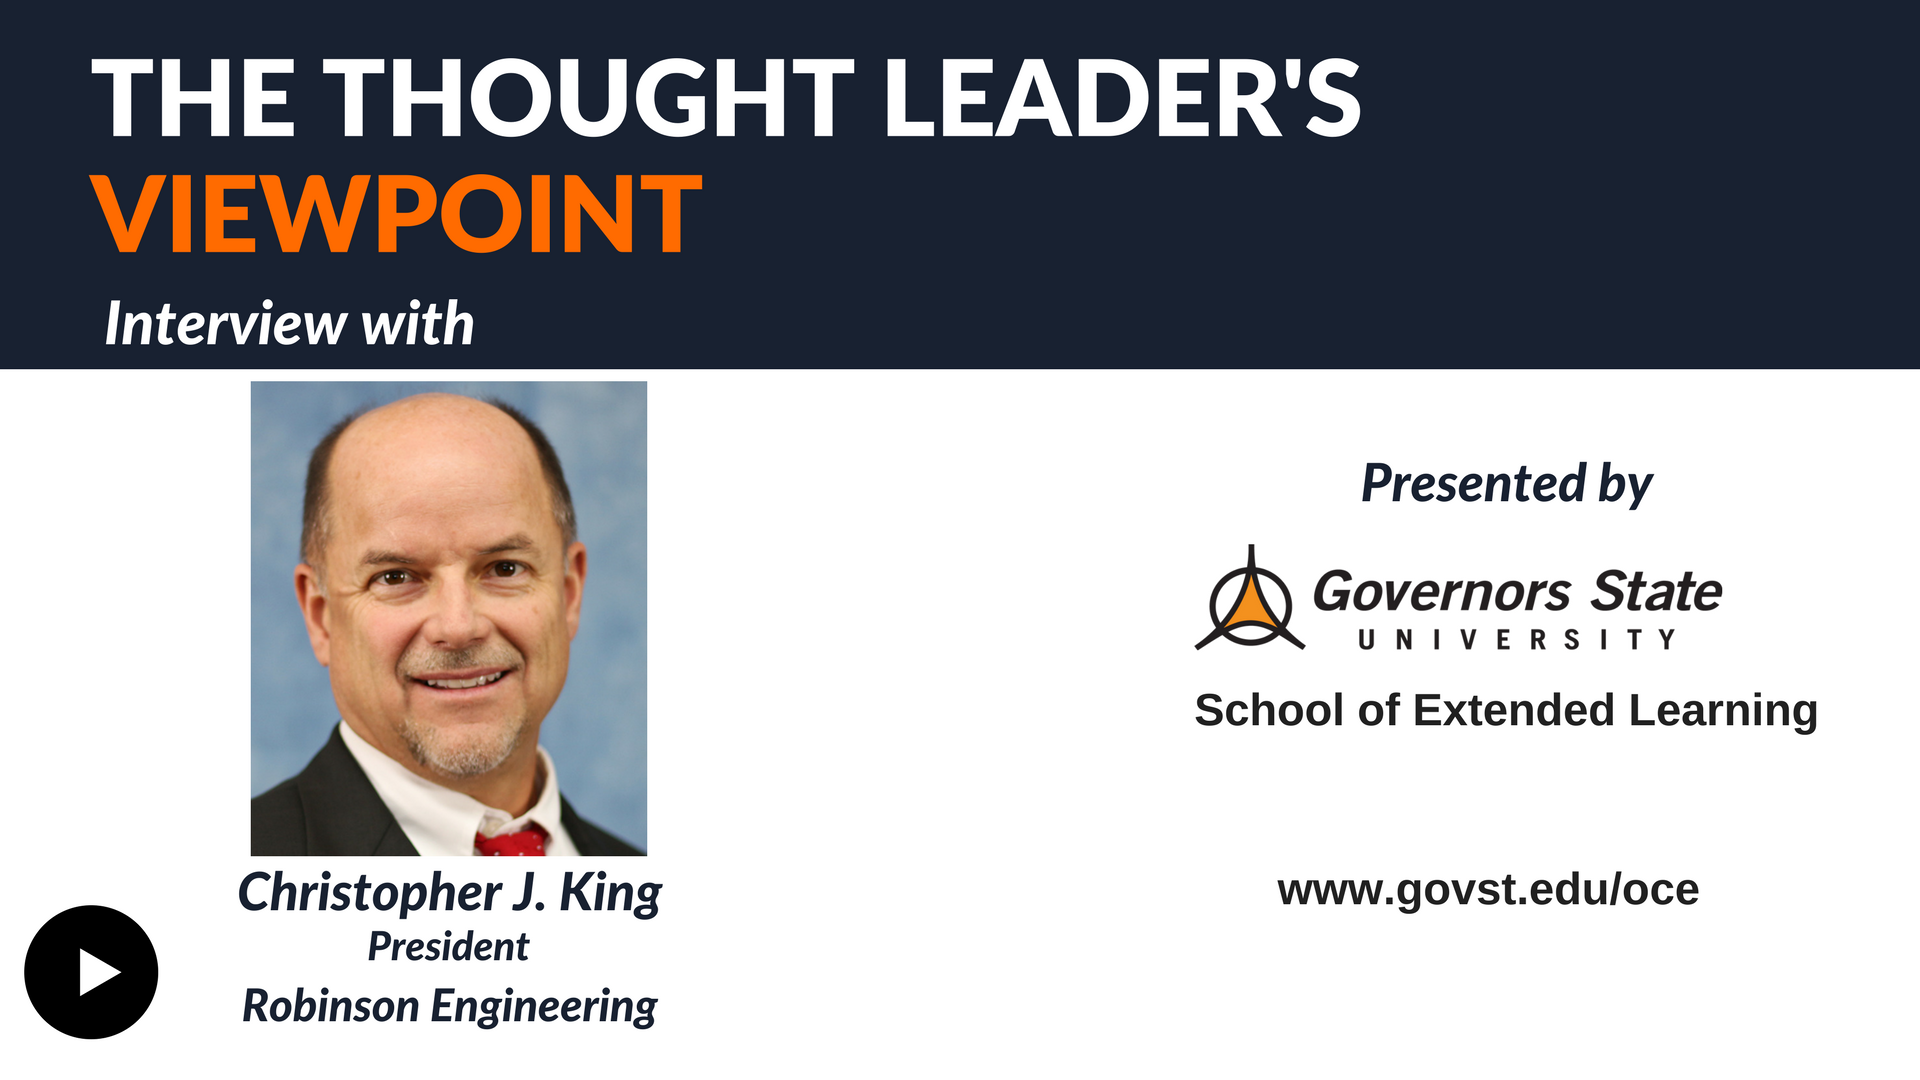 The Thought Leader's Viewpoint--Christopher J. King